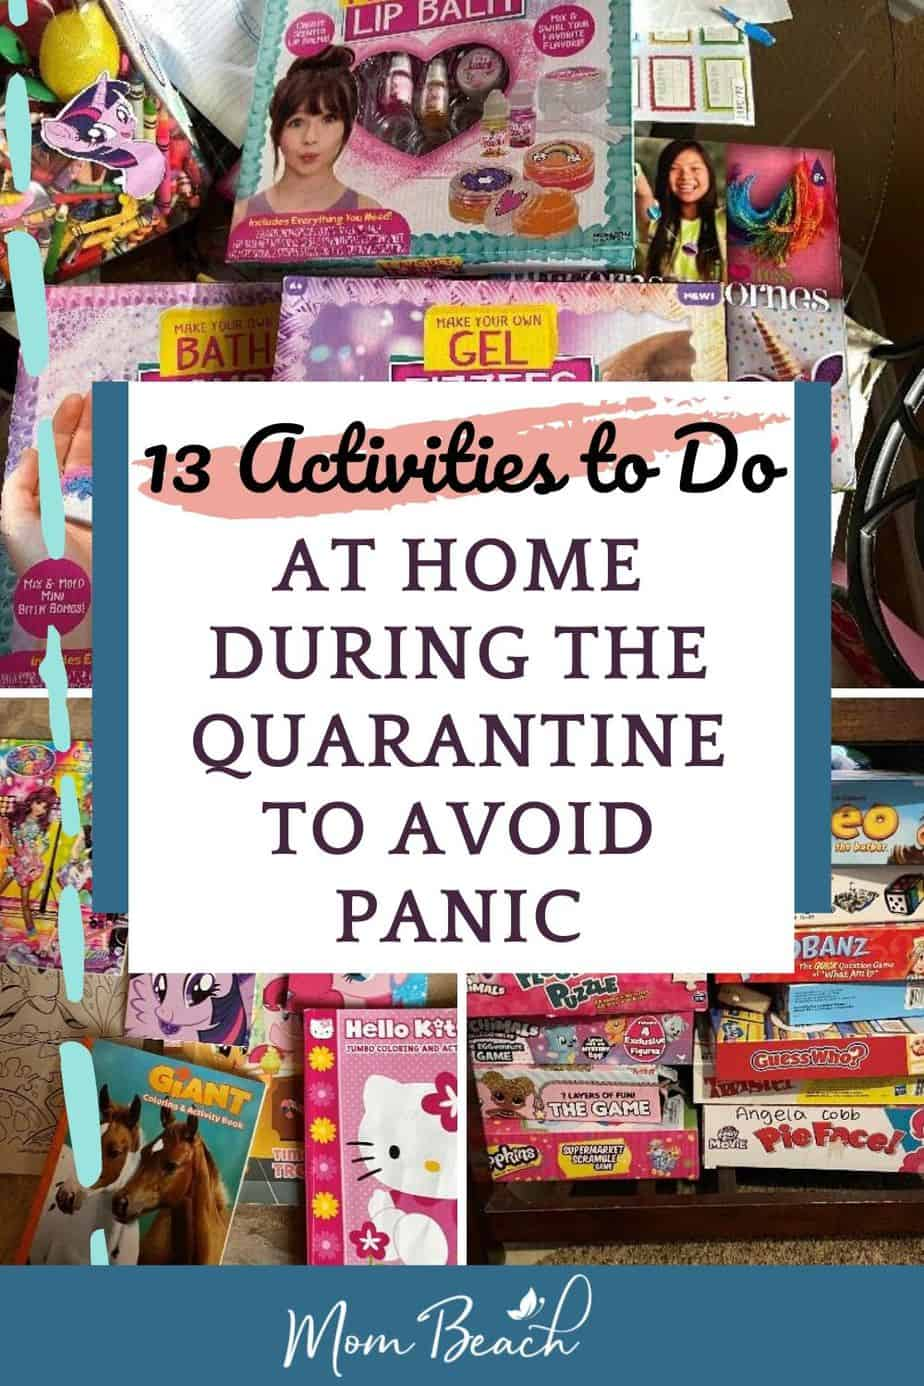 Are you shut indoors because of COVID-19? Here are a list of 13 activities to do at home during quarantine to avoid panicking. There are so many activities to do at home such as DIY crafting, cooking new meals, playing board games, and more! #activitiestodoathome #activitiestodoathome #activitiestodoathomewithkids #indooractivities #kidindooractivities #indoortoddleractivities #indoorkidactivities #thingstodoathome